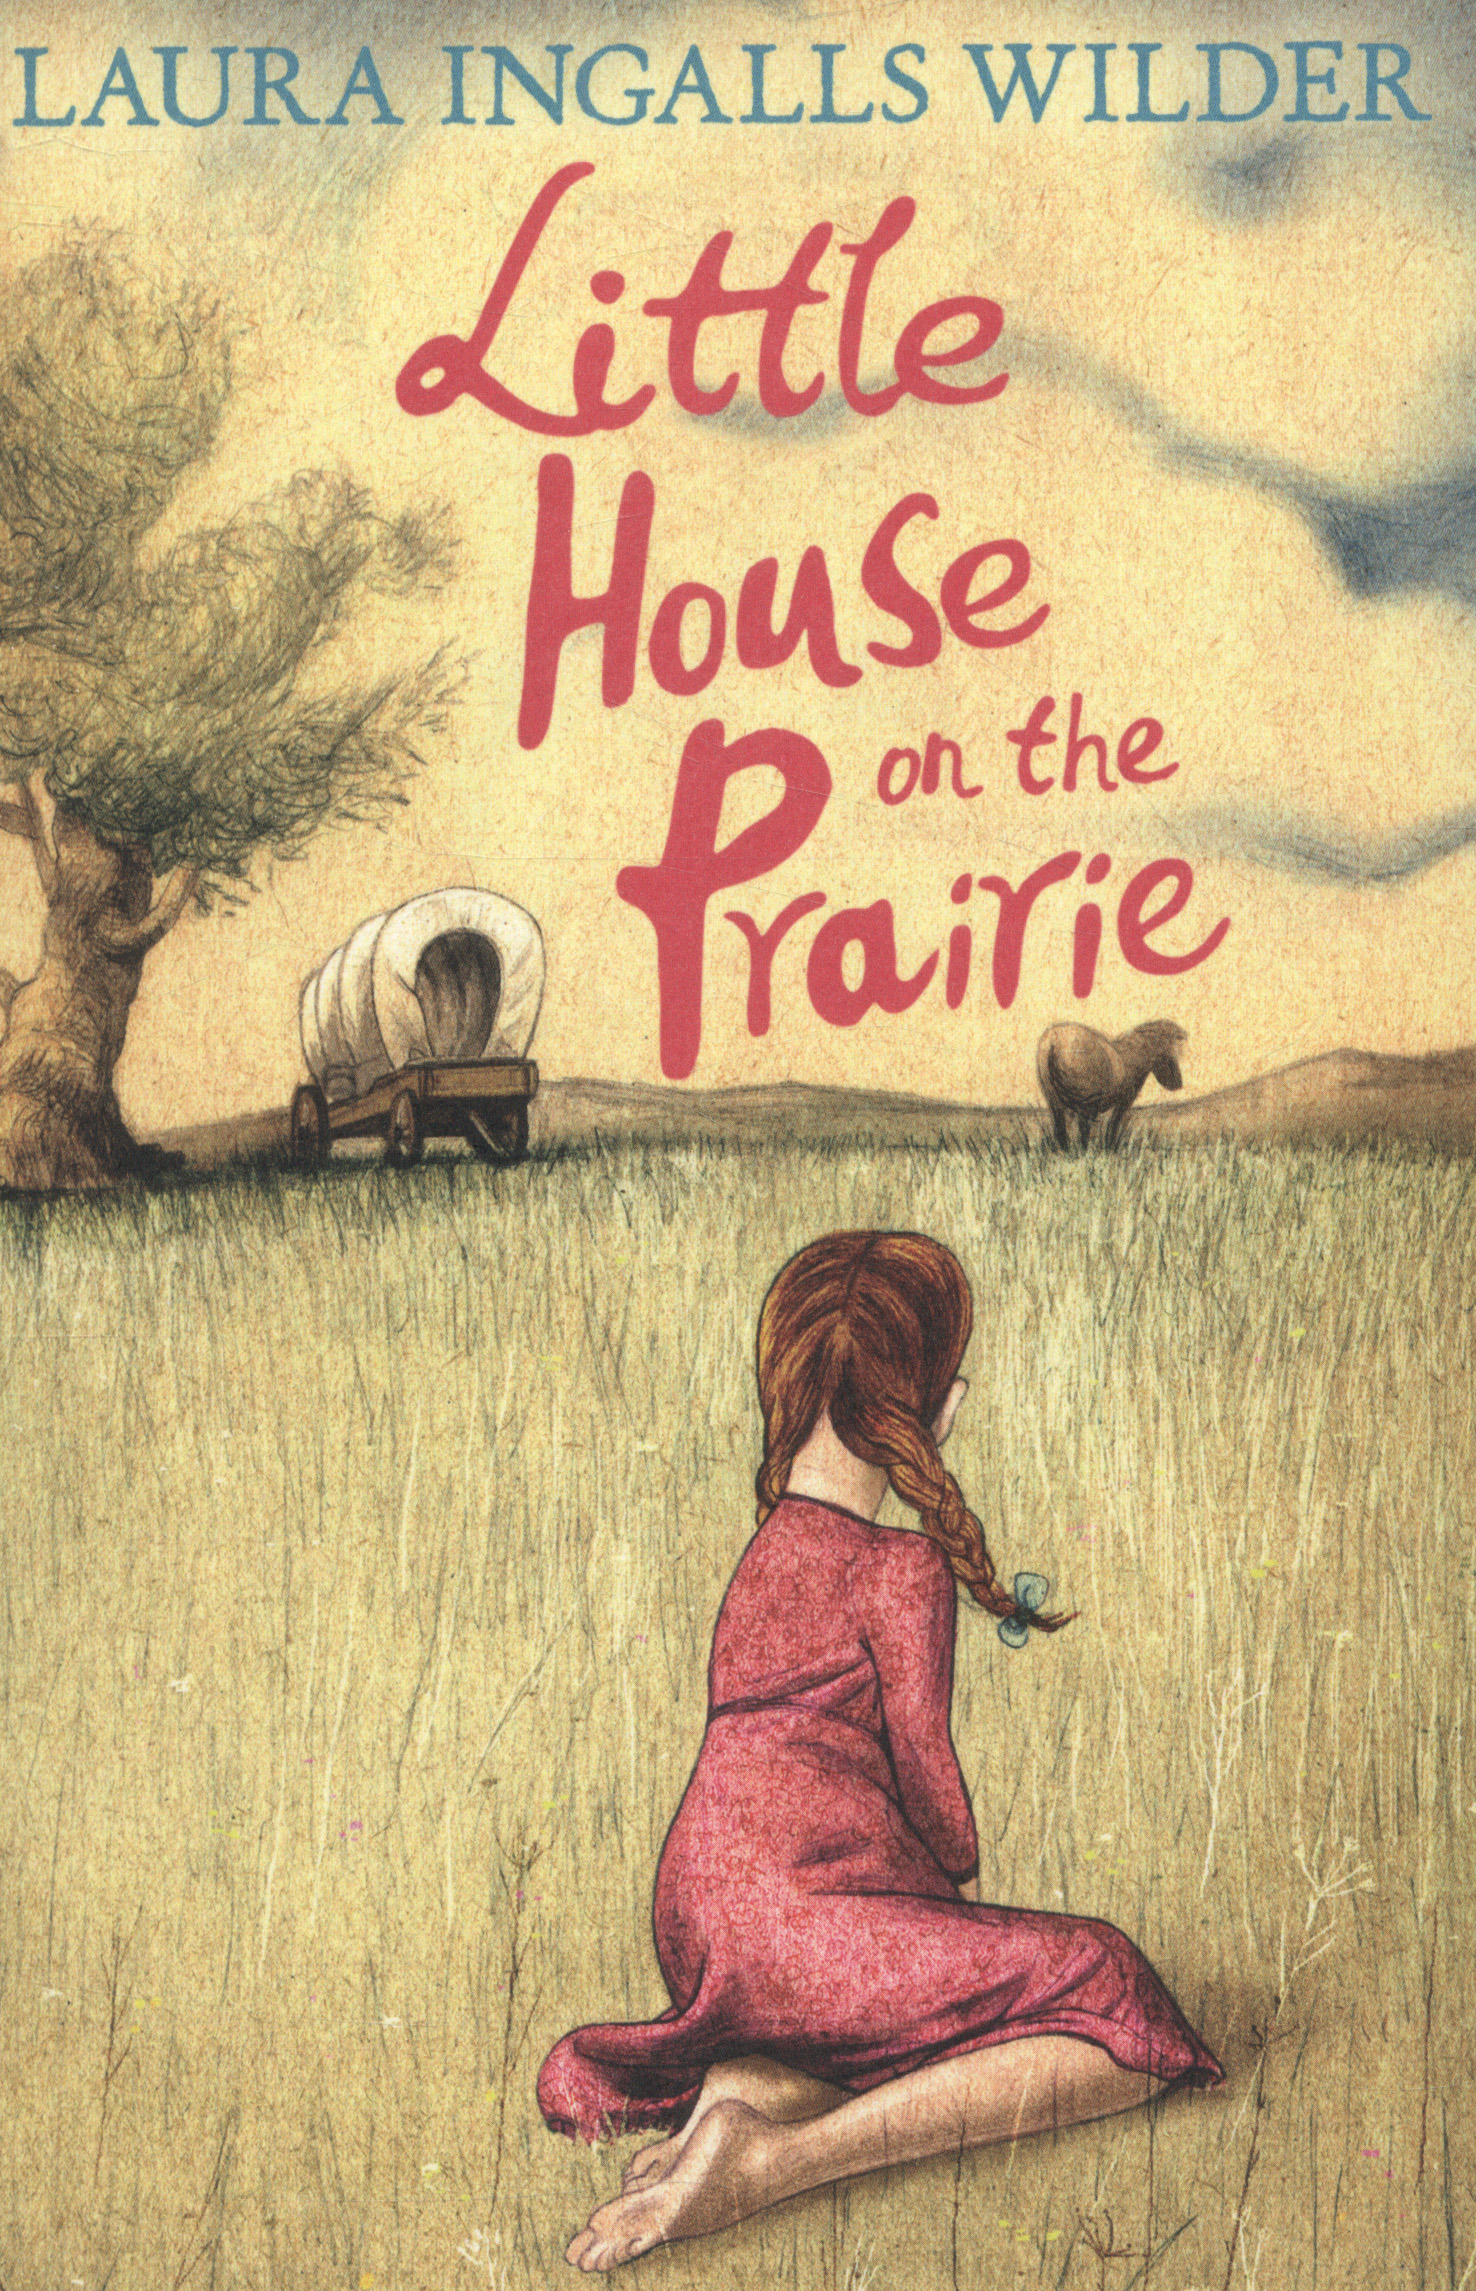 Illustration by Garth Williams for Little House on the Prairie